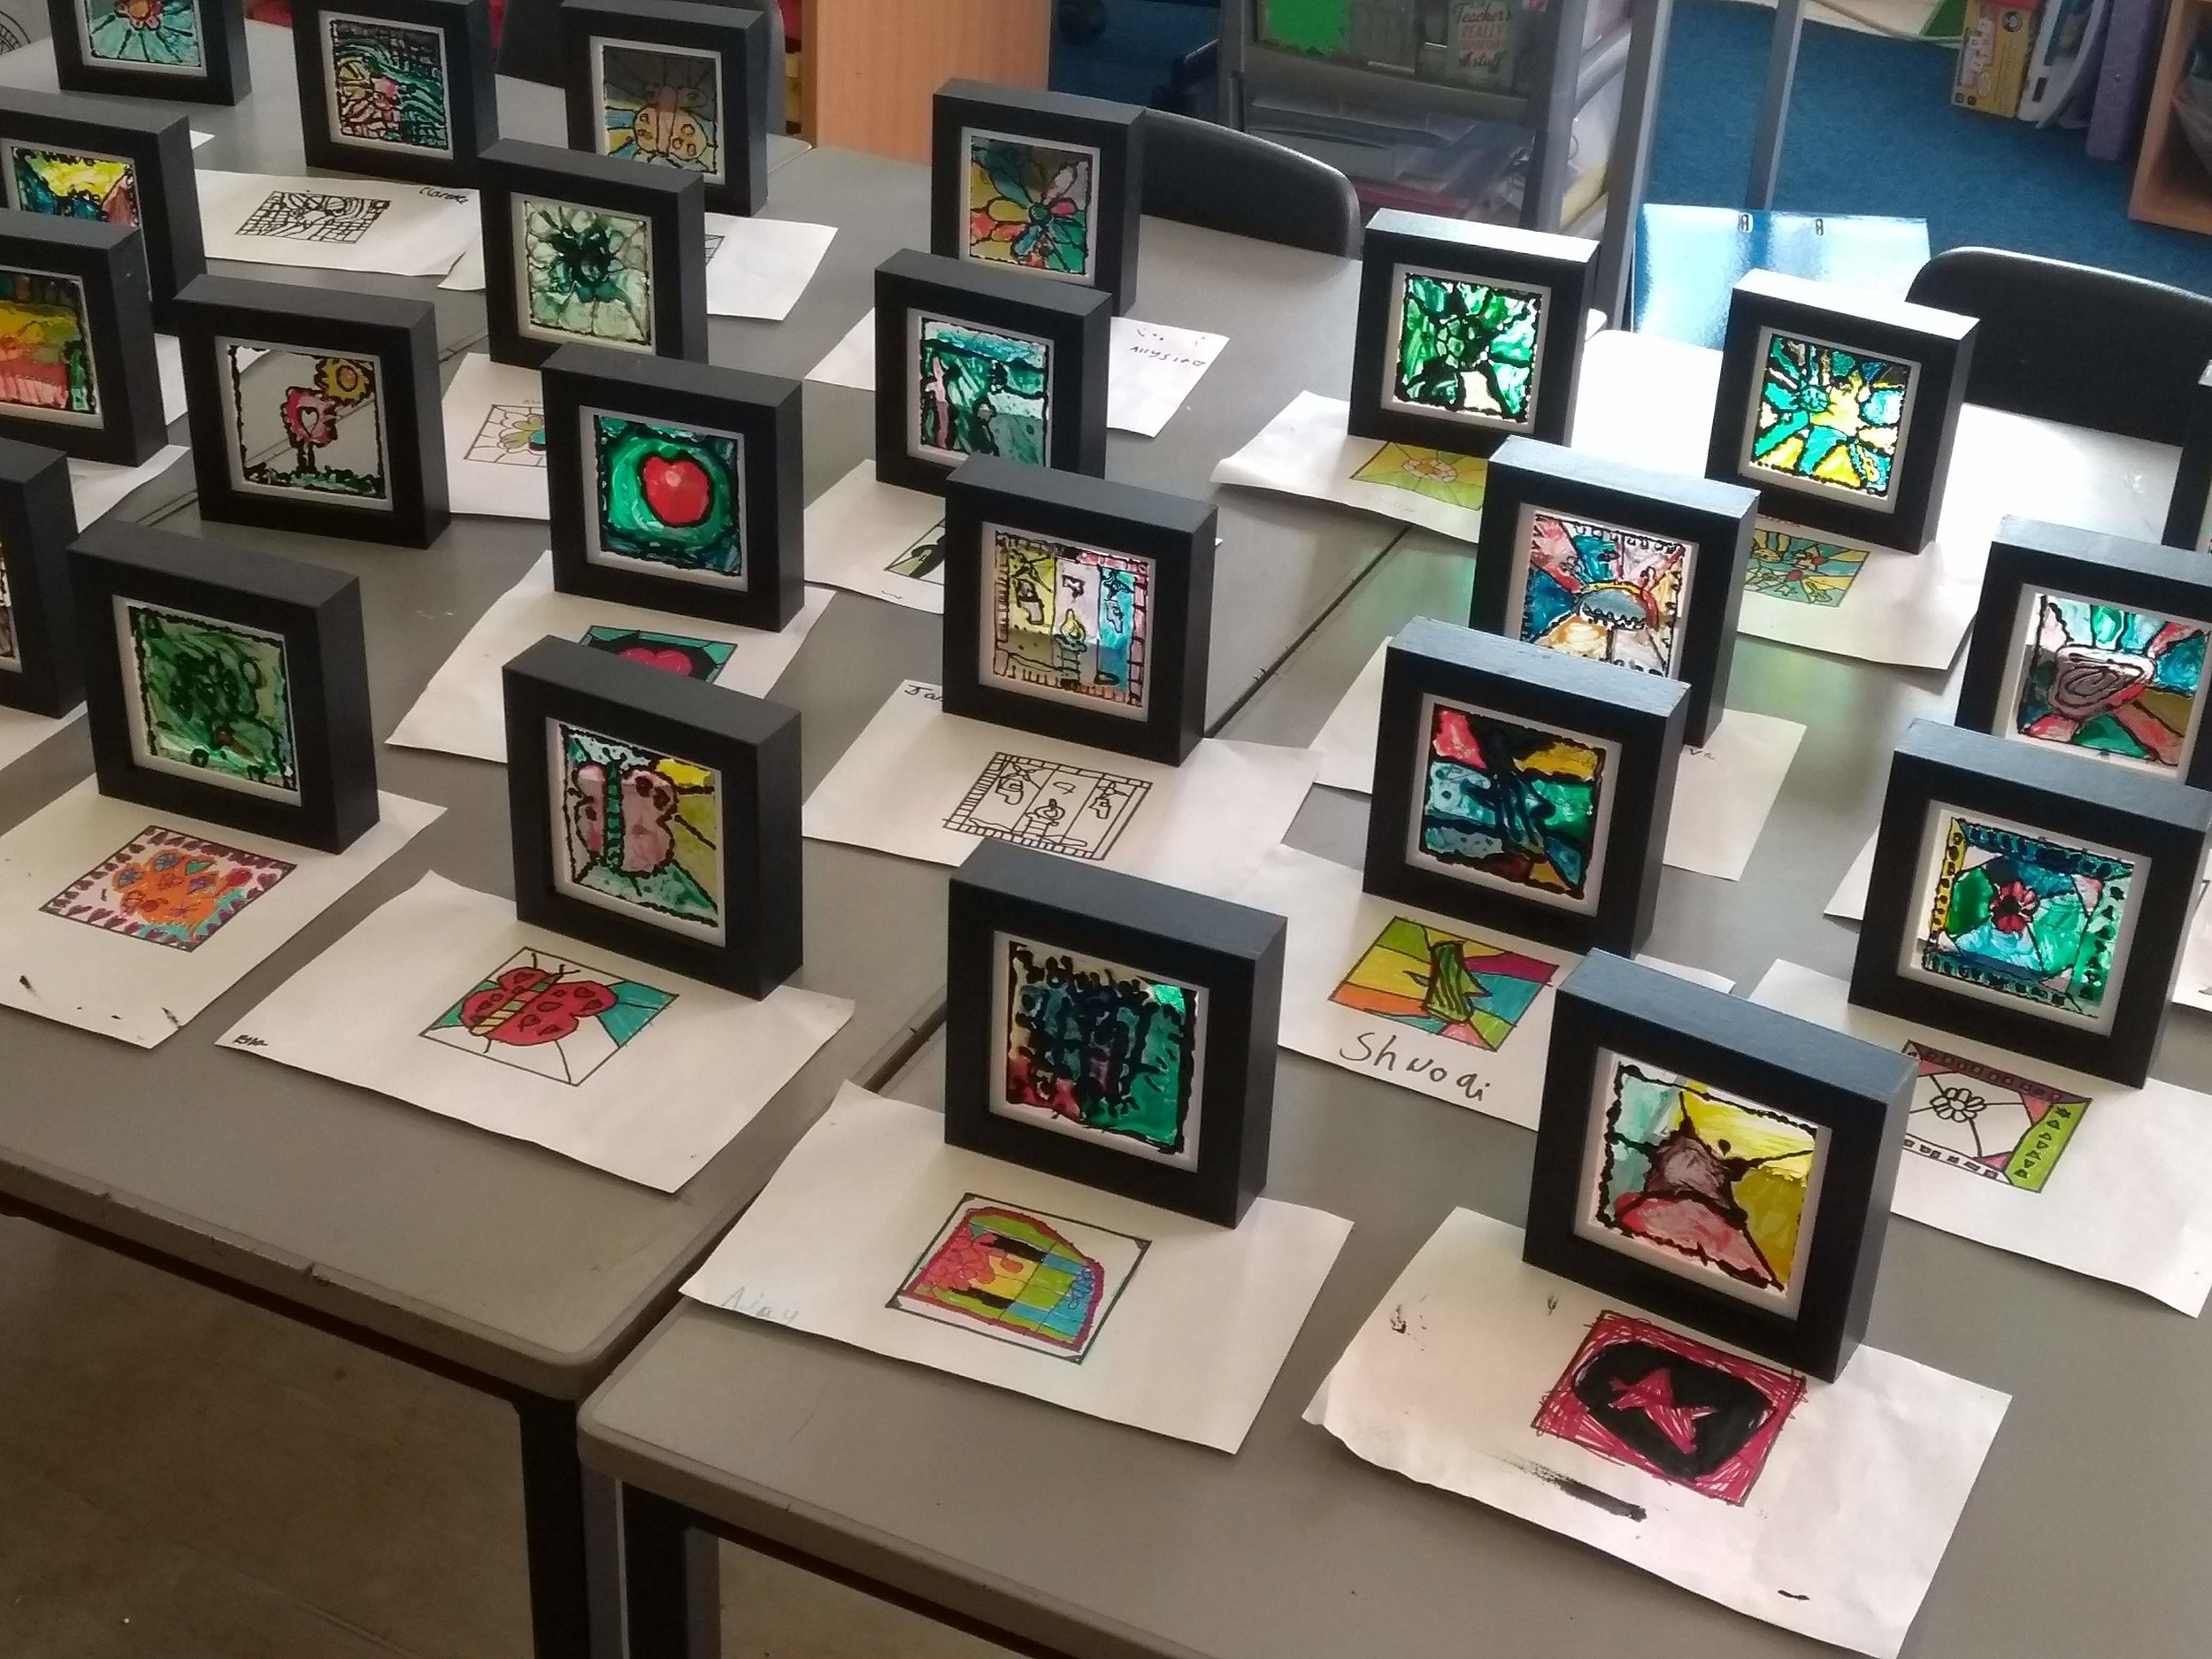 SCHOOL VISIT TO WHITEHAVEN - In October 2018, the Y3s at Jericho Primary school in Whitehaven had a chance to make their very own small panel of painted glass. The children were learning all about light, and what is it like to work in a traditional craft on old buildings.